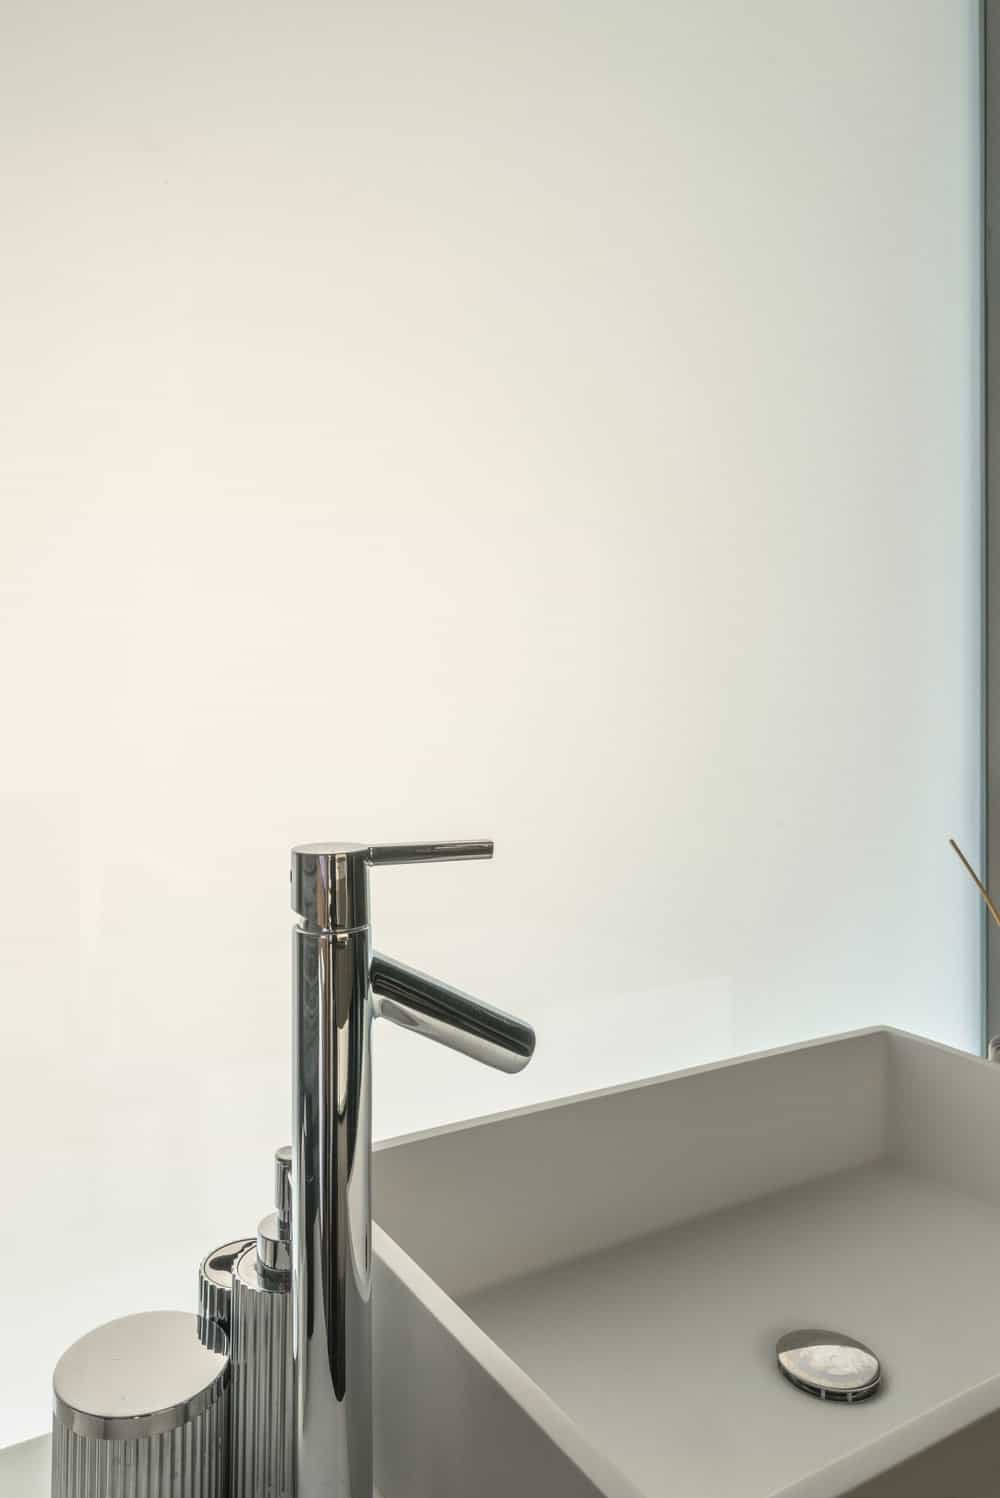 This glass panel can be made opaque to provide privacy for the bathroom.